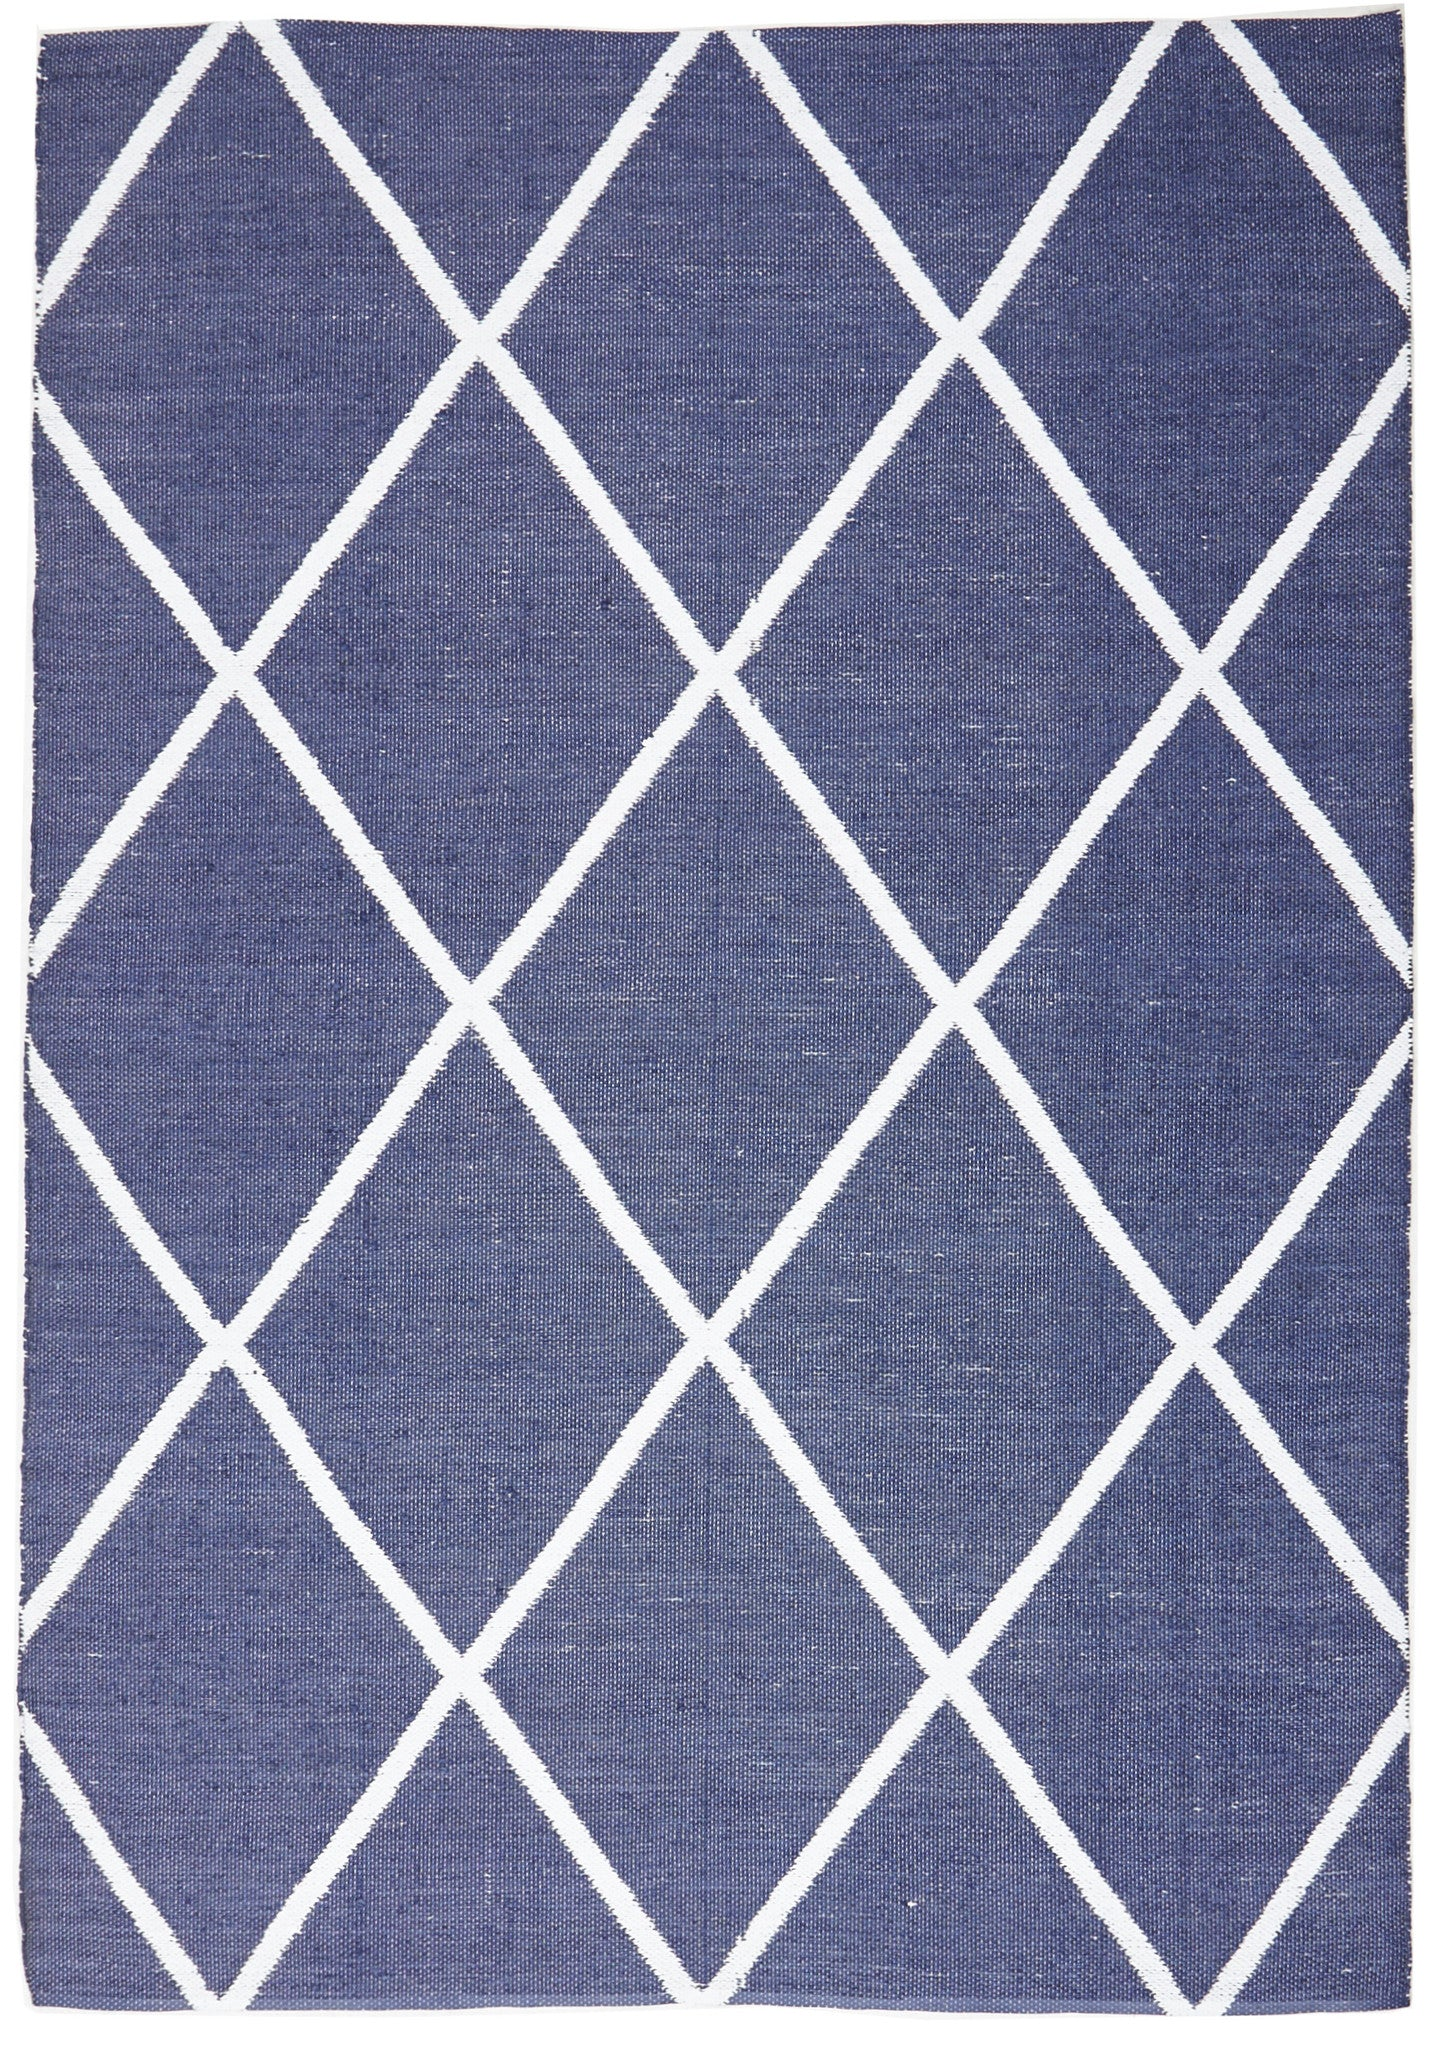 Coastal 3 Indoor Outdoor Rug - Diamond Navy White